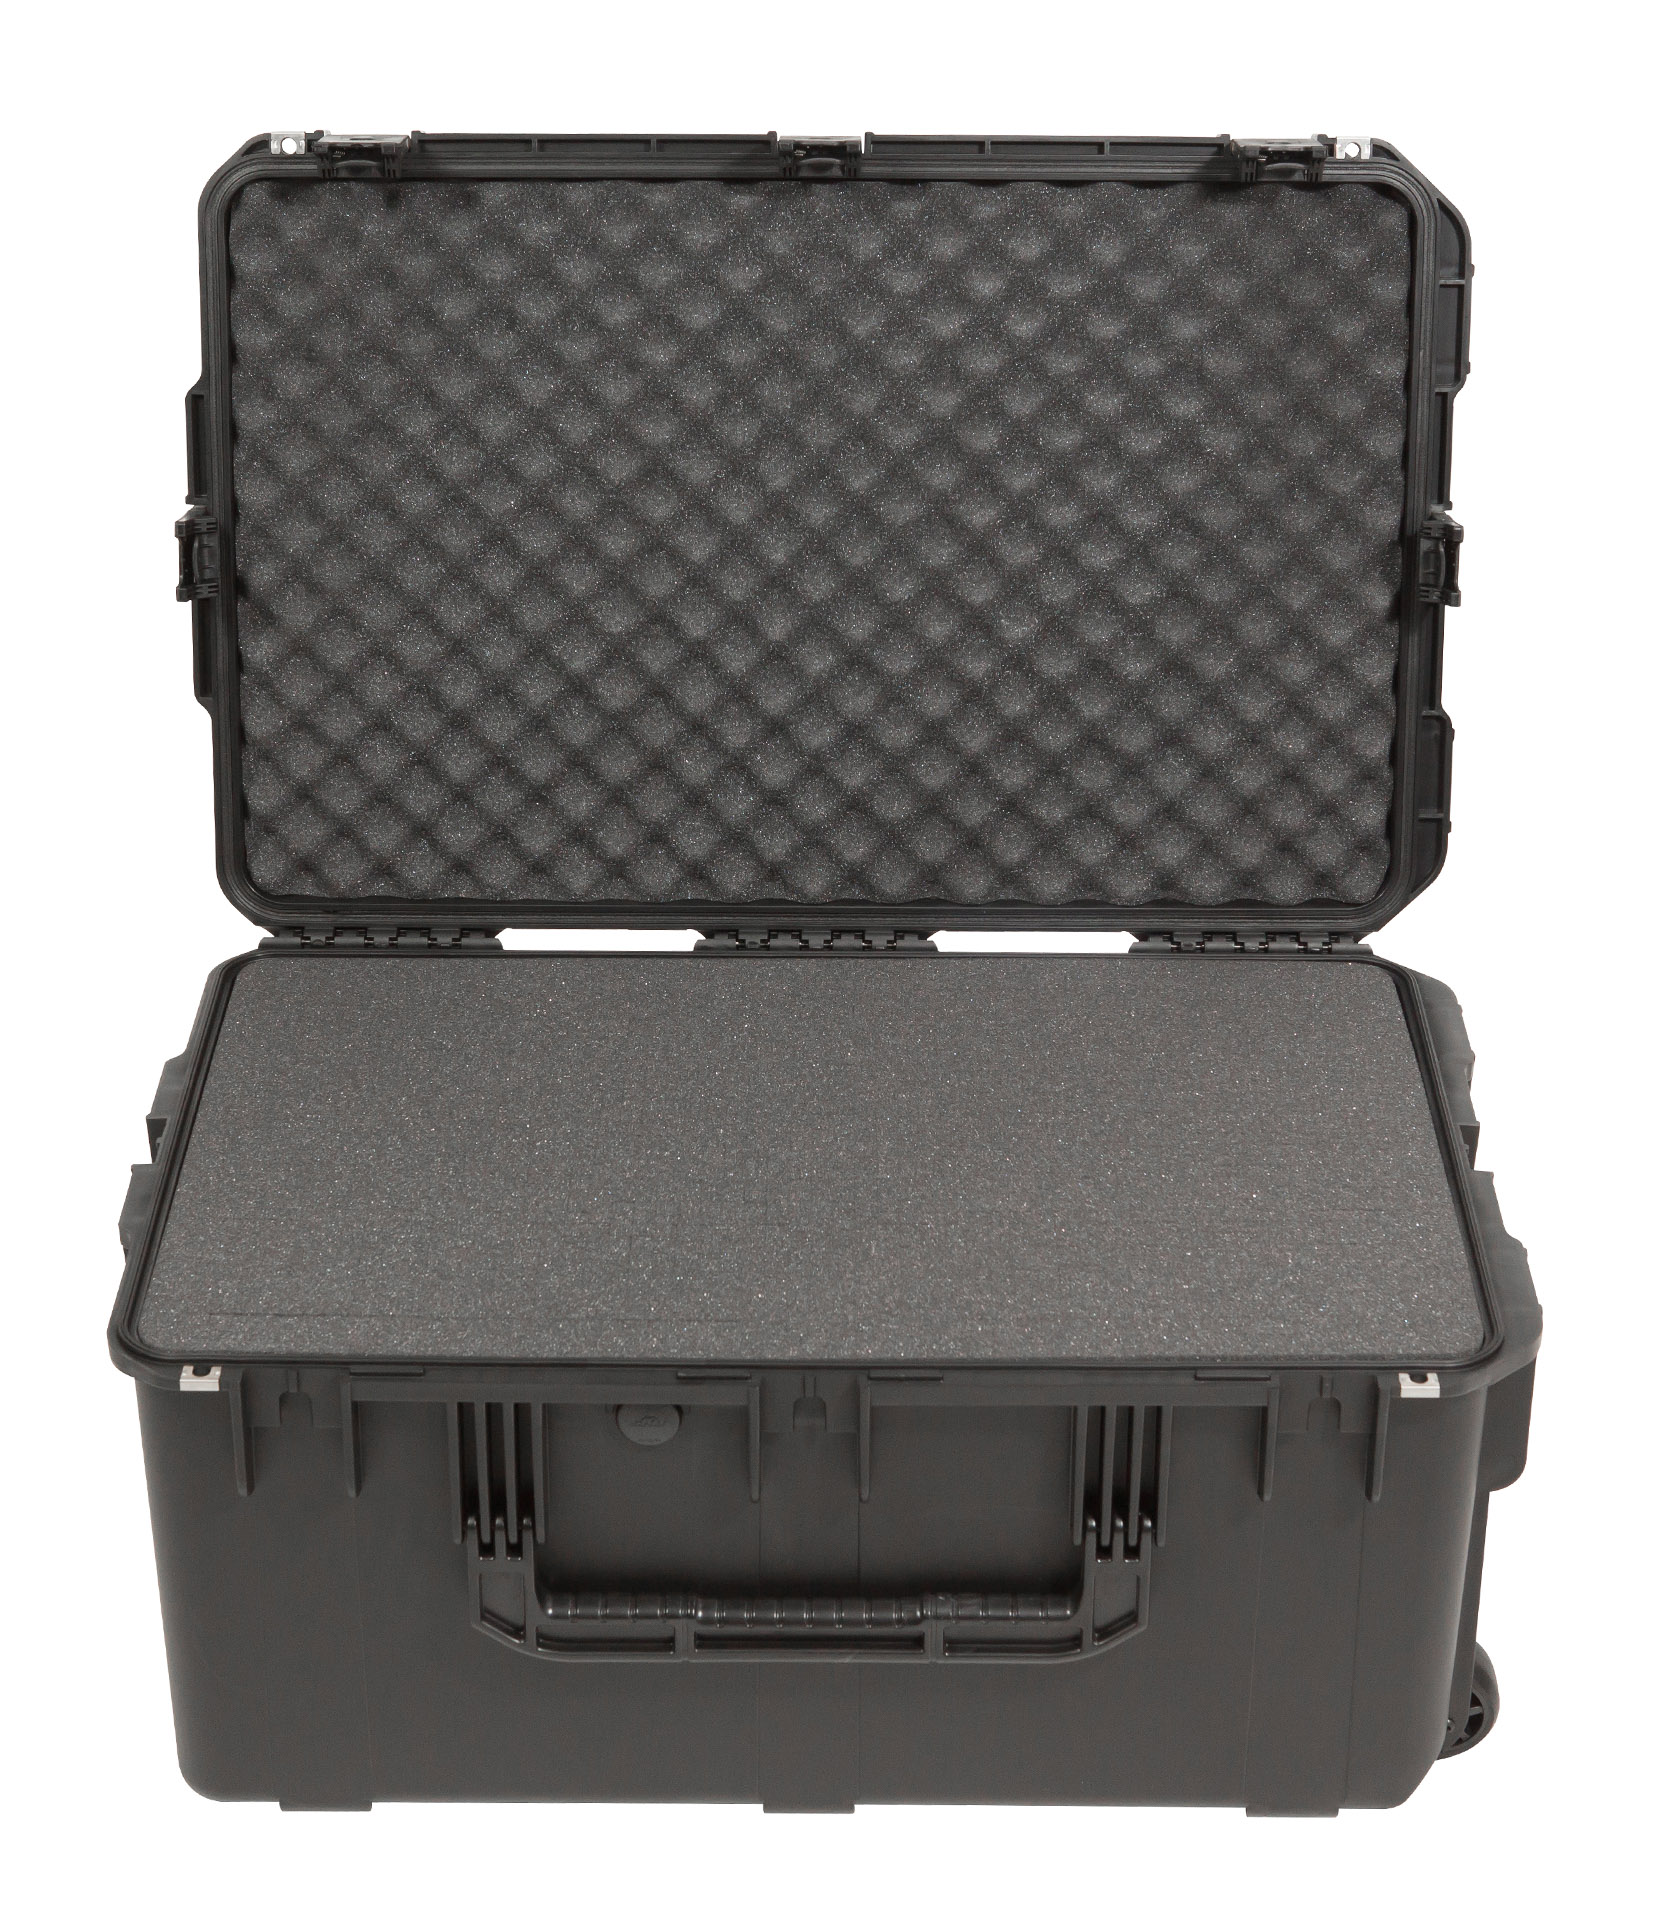 Buy skb 3I 2918 14BC 29 x 18 x 14 Cubed Foam with wheel Melody House